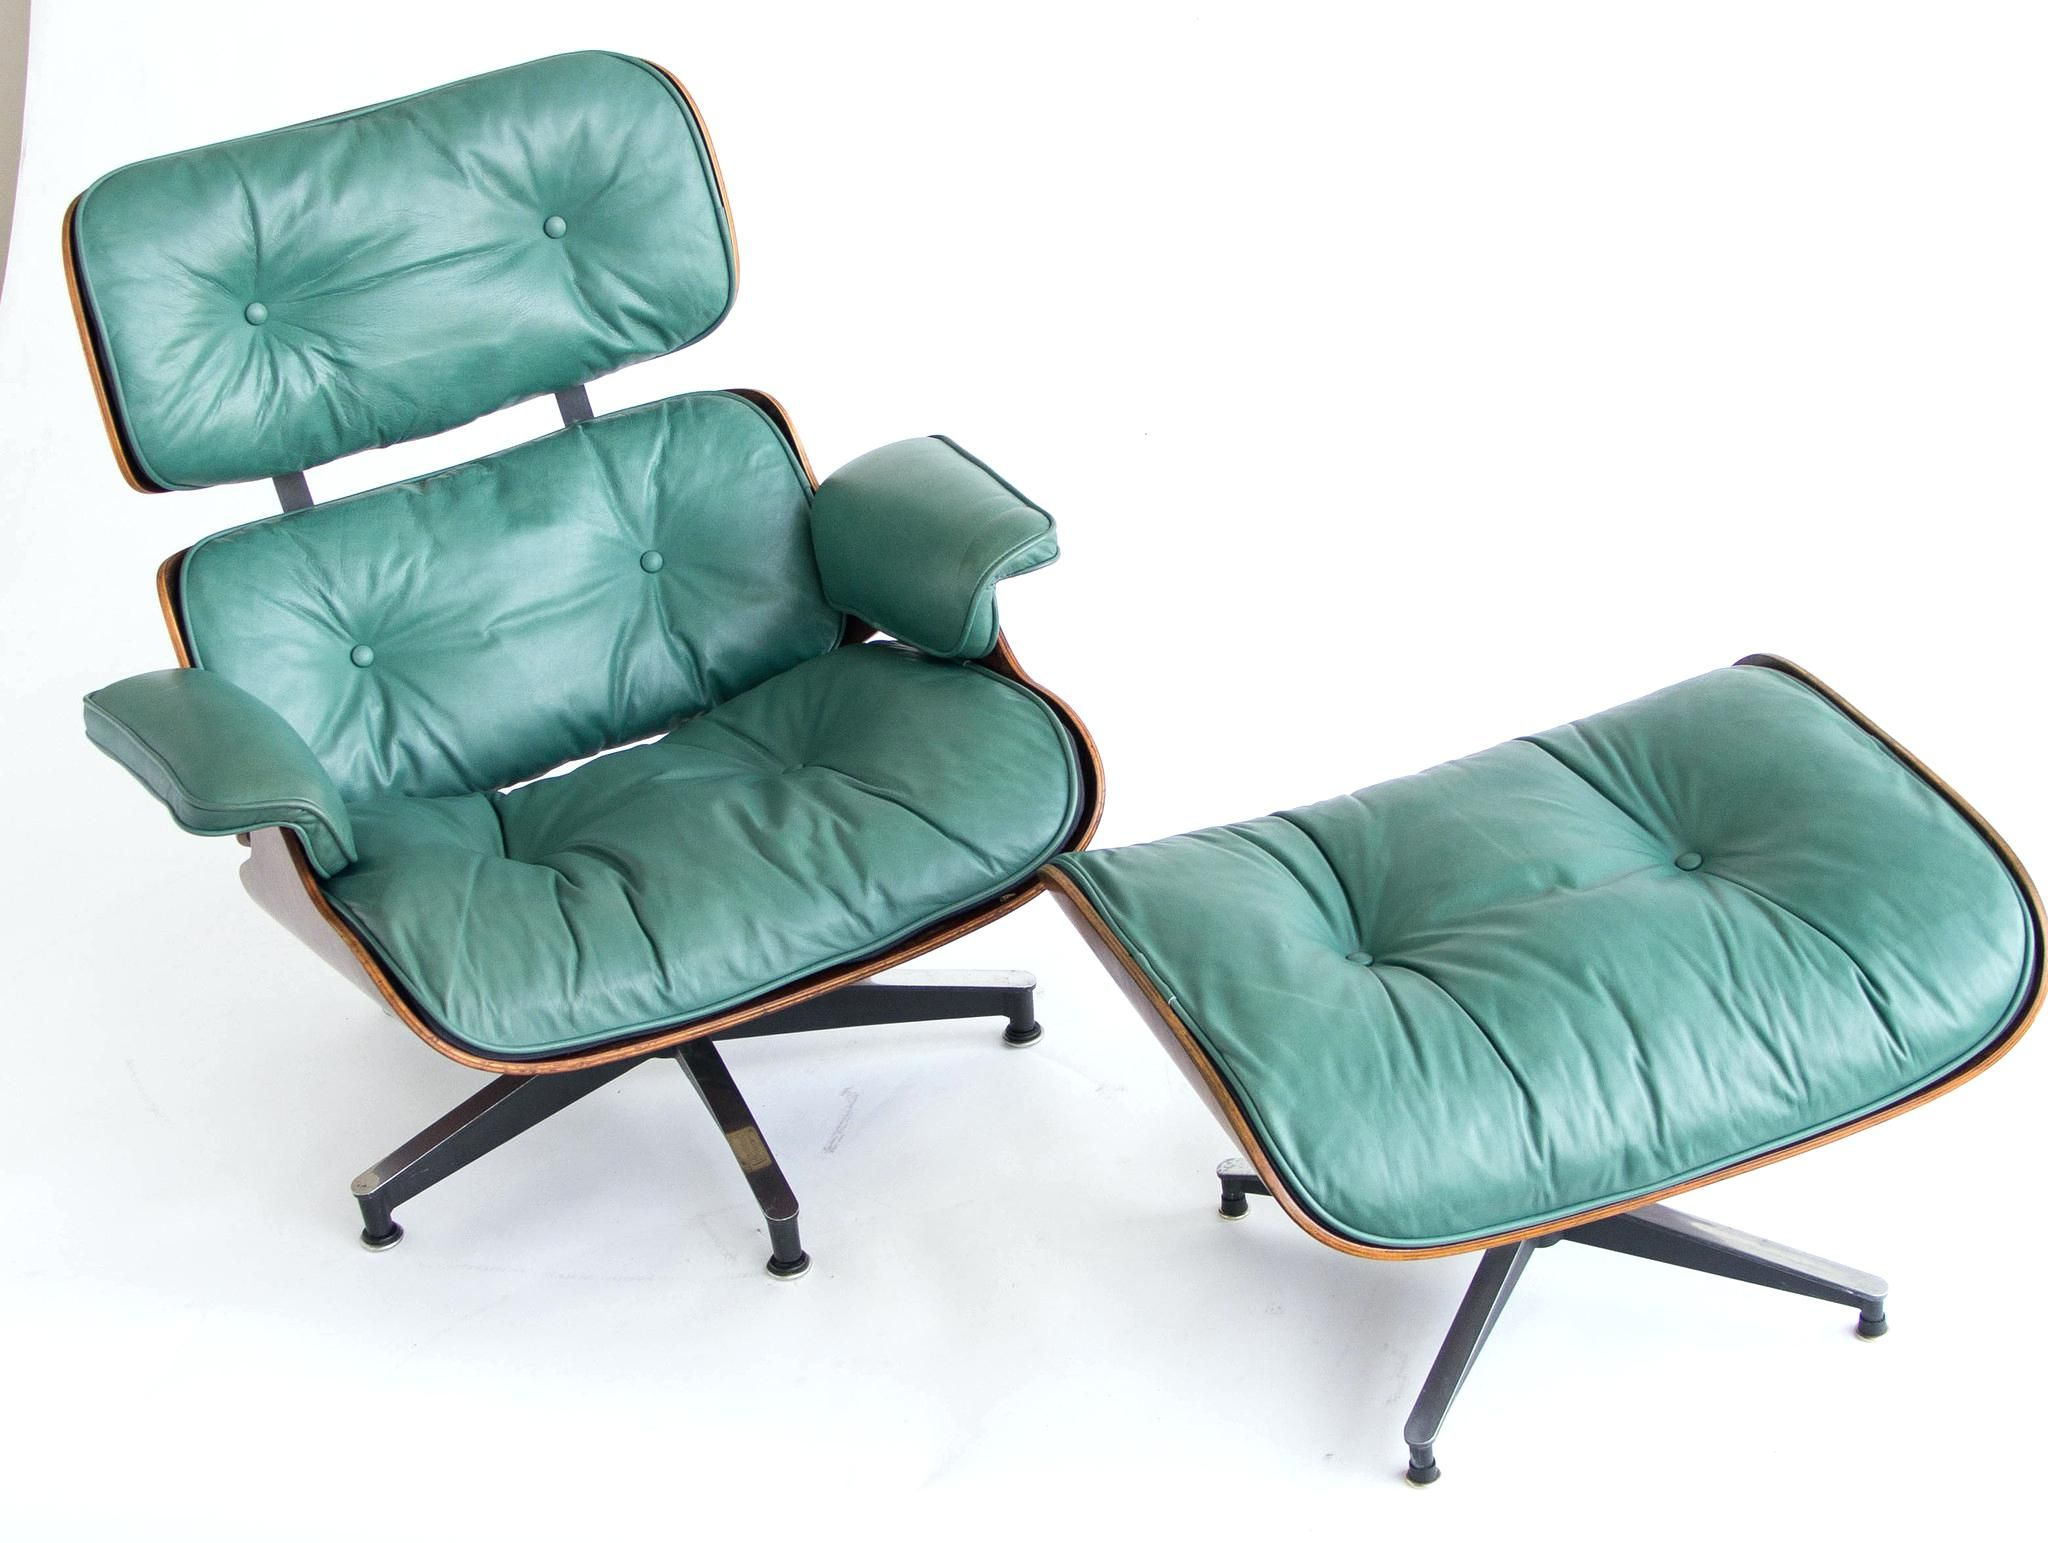 Futon Lounge Chair Sessel Eames Lounge Chair Und Ottoman Verwendet Herman Eames Eames Style Lounge Chair Repl Eames Lounge Chair Lounge Chair Chair And Ottoman